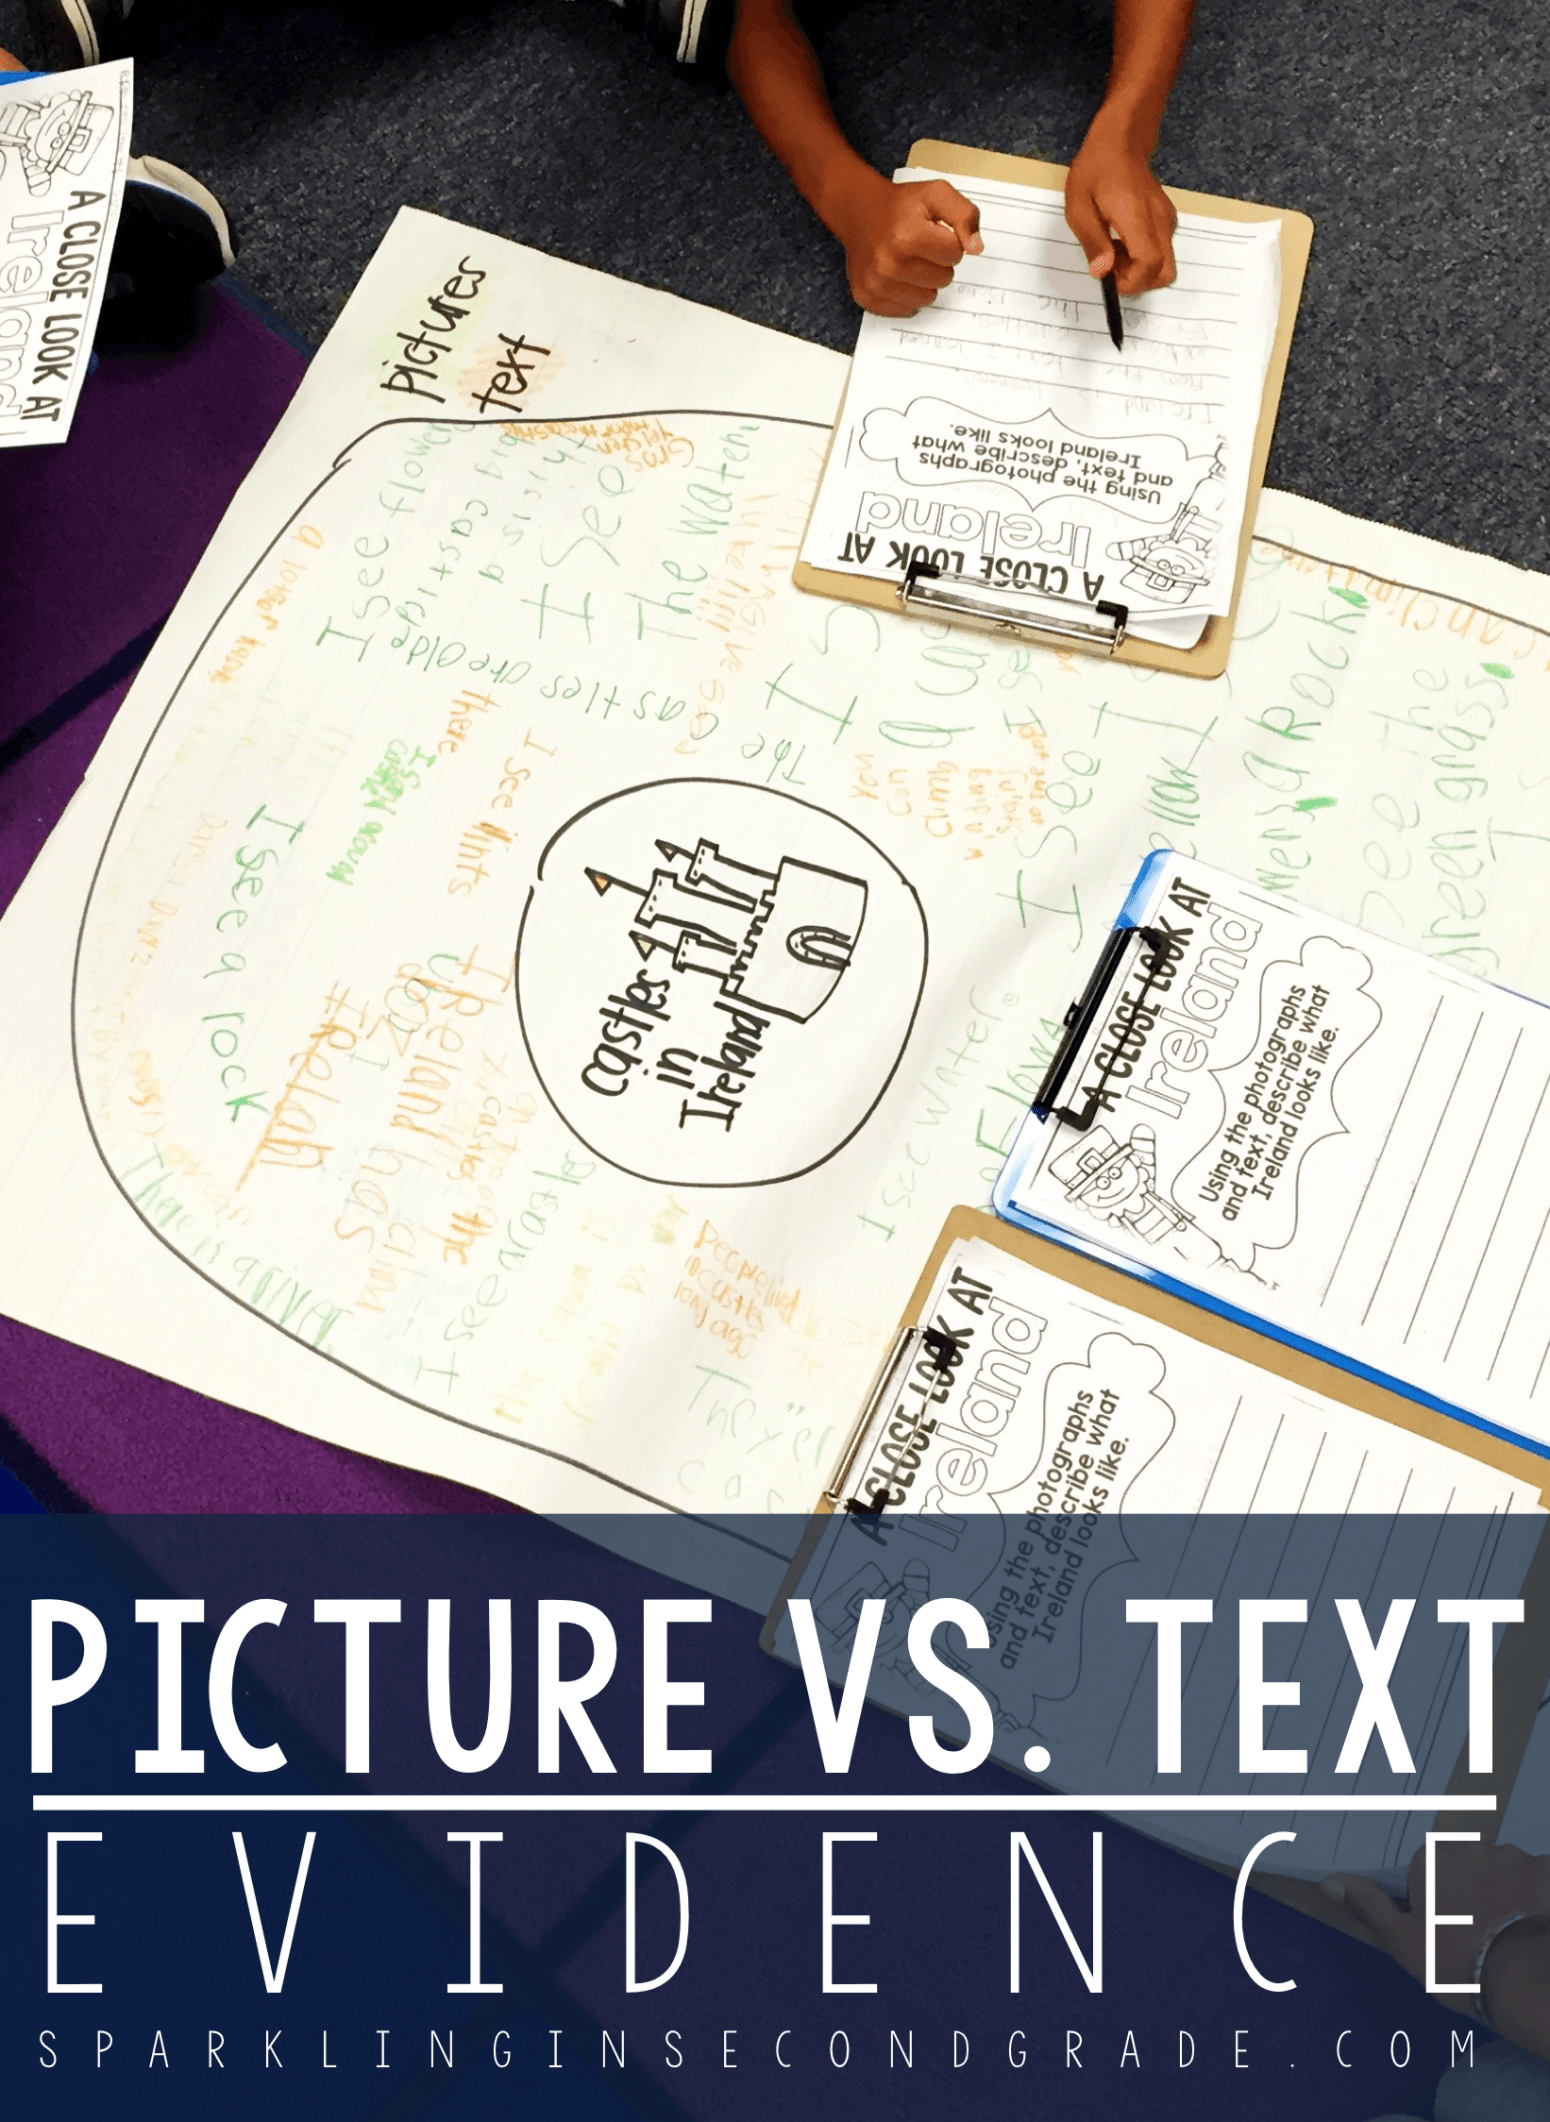 Picture vs. text evidence is a reading comprehension skill that is vital in first grade. Here is a fun way to get students to master it while having fun!